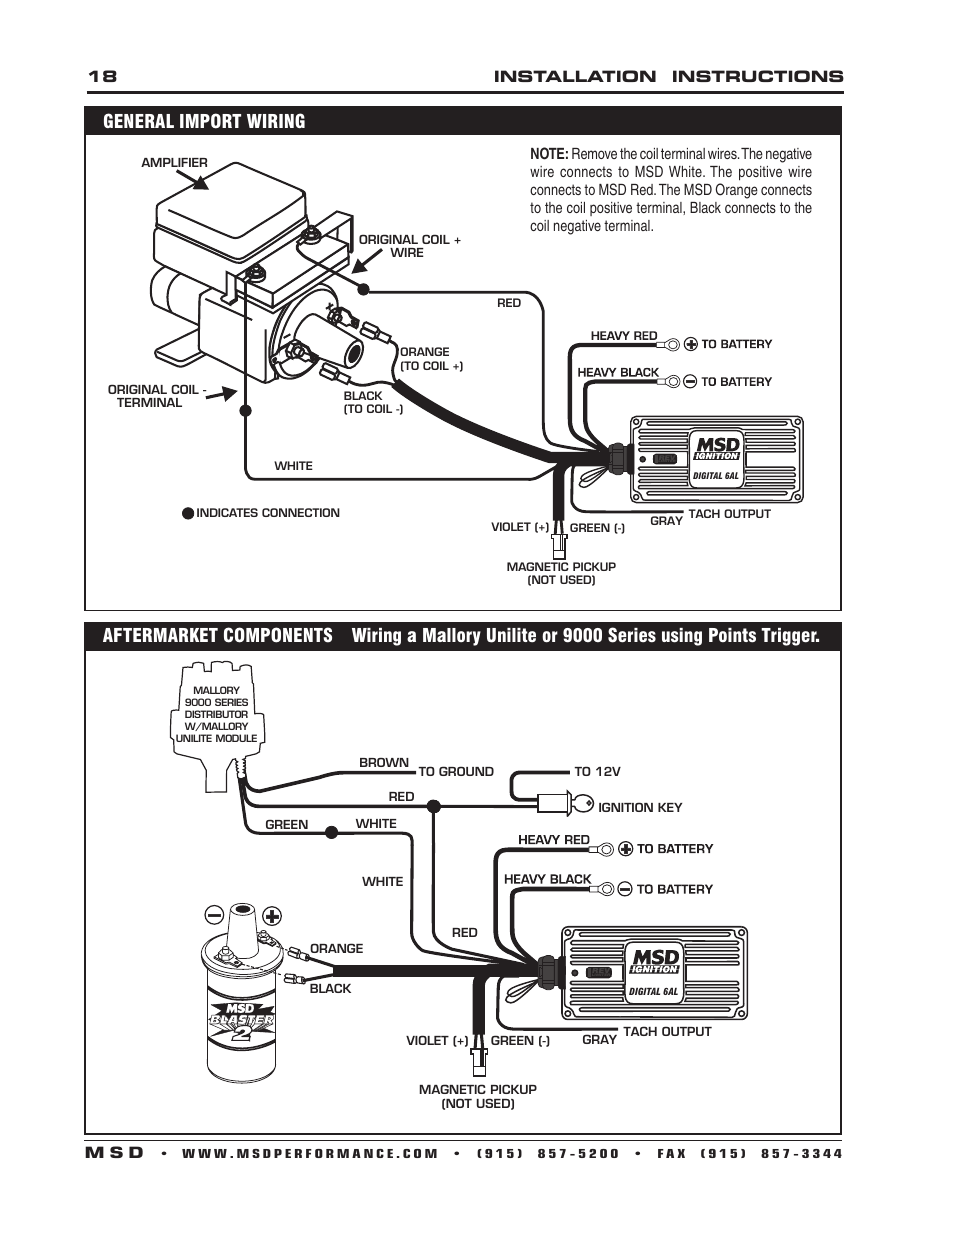 MSD 6201 Digital 6A Ignition Control User Manual | Page 18 ... A Mallory Unilite To Msd Al Wiring Diagram on